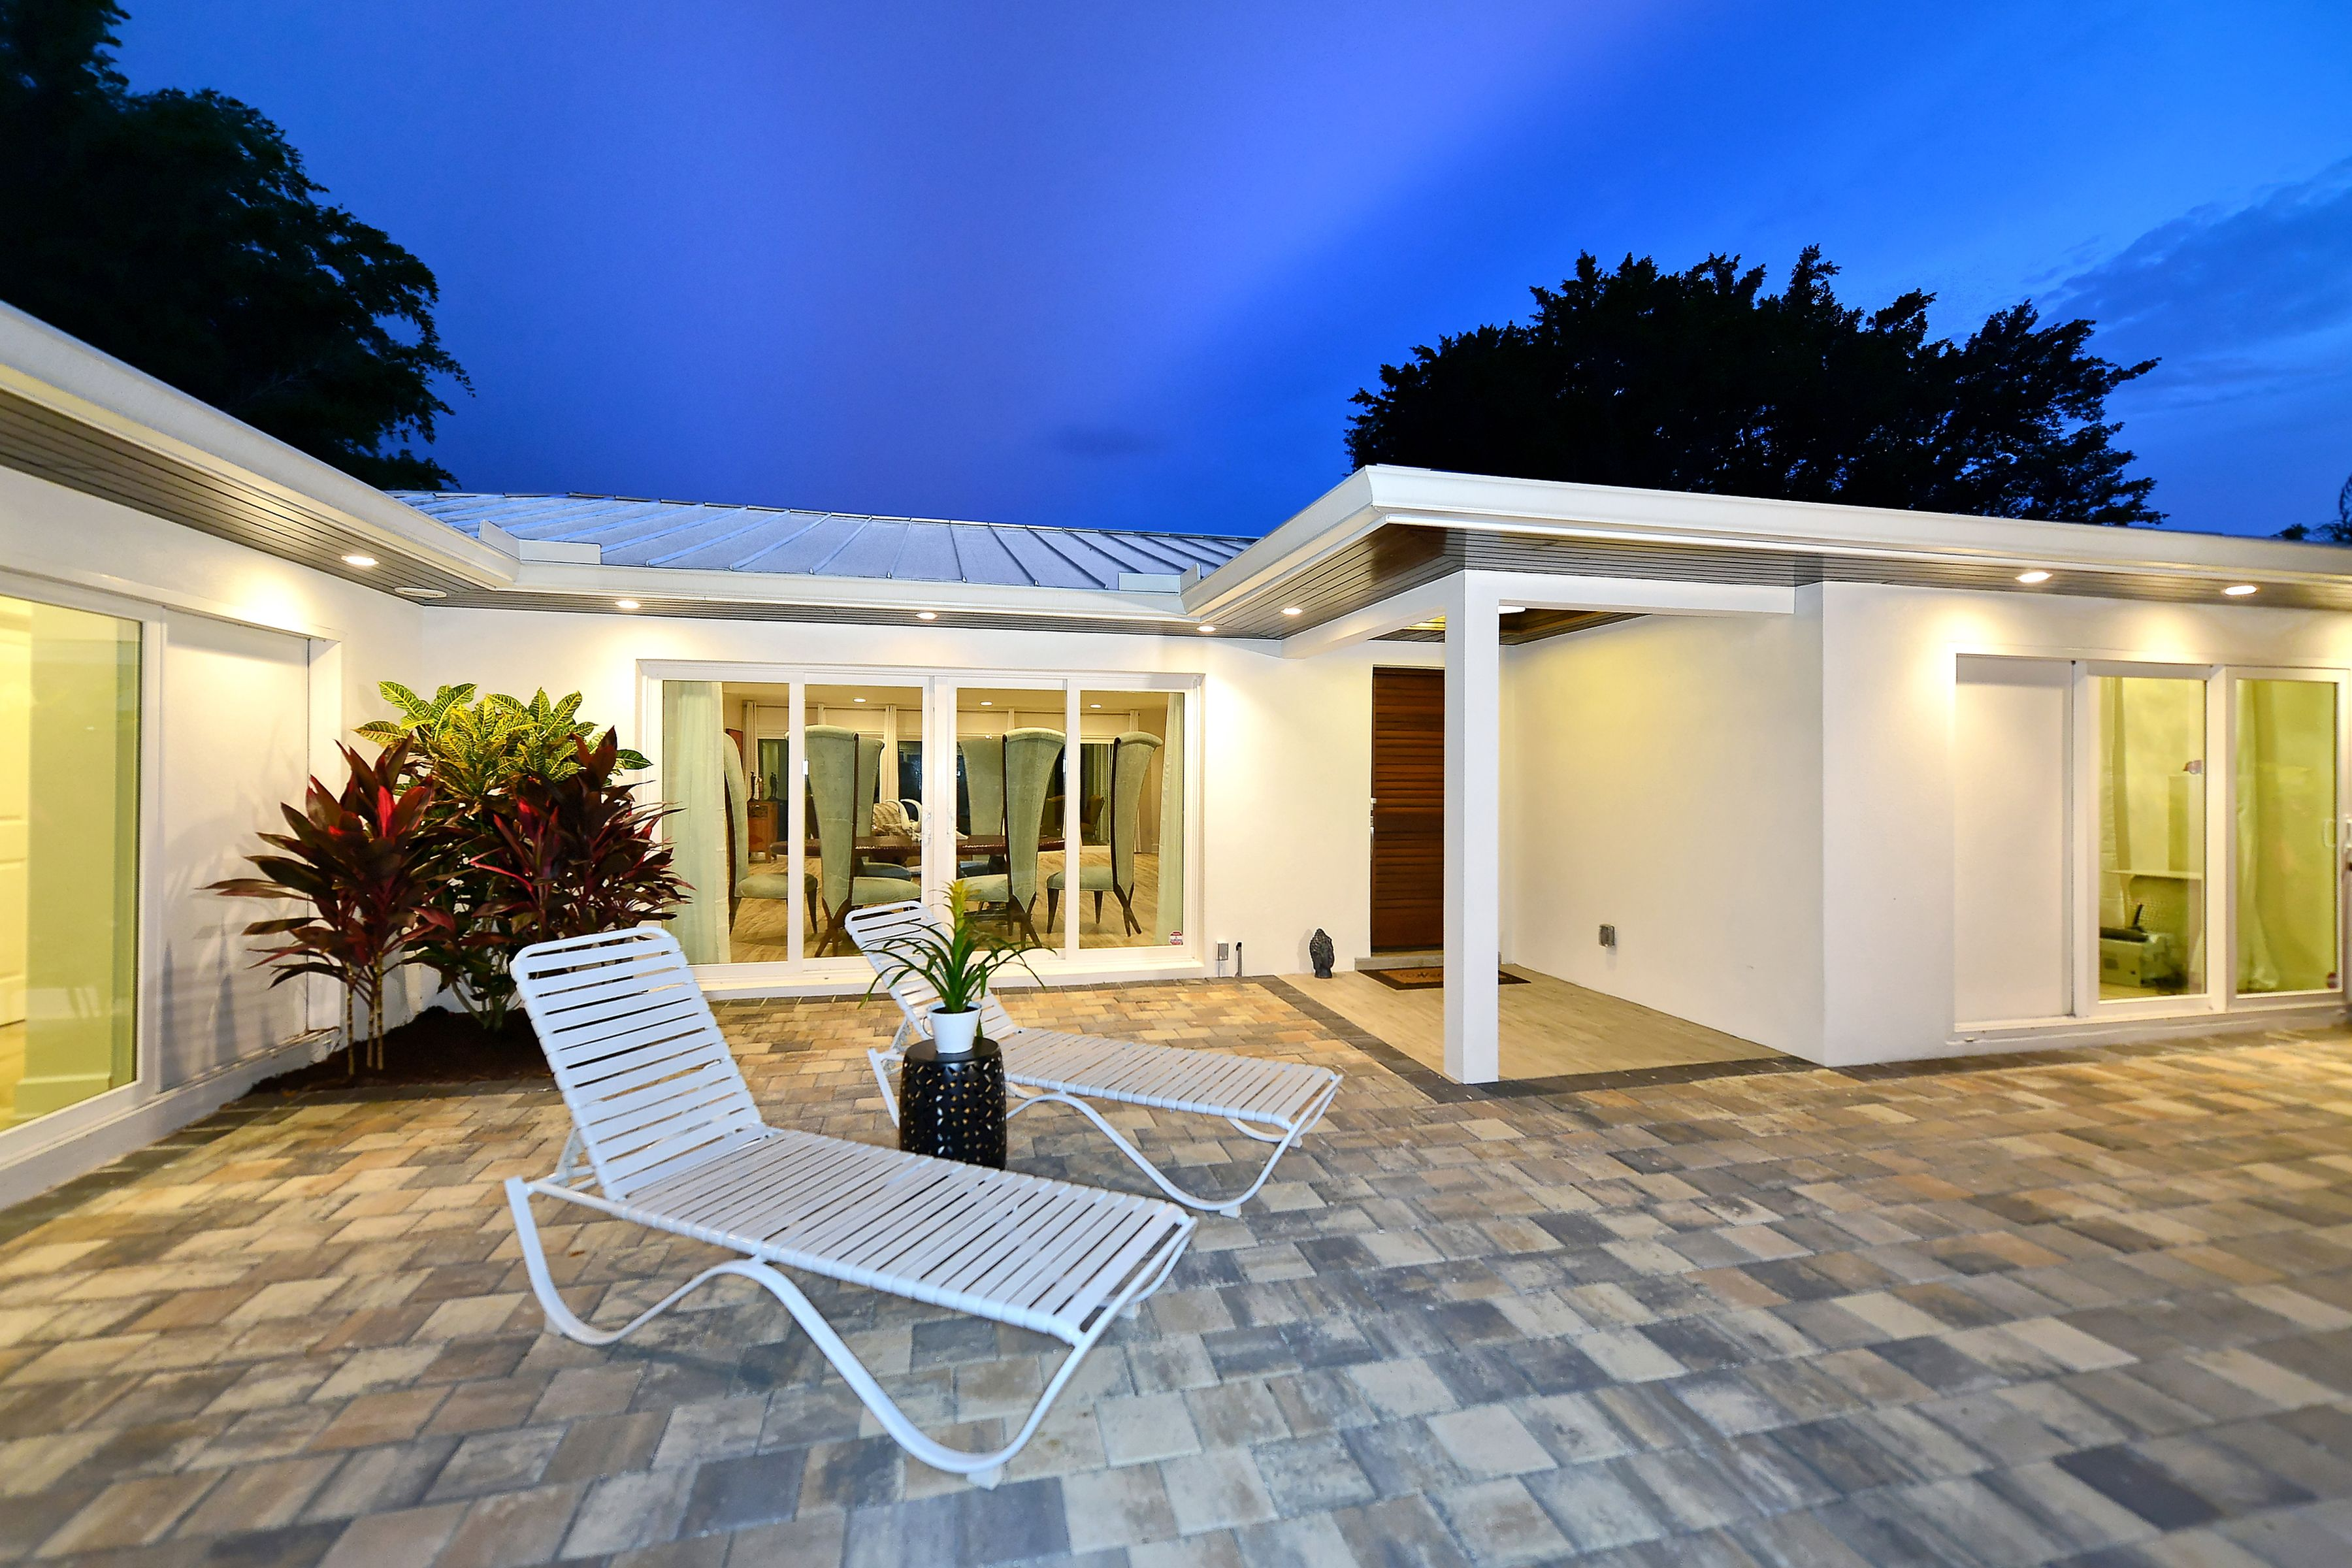 Front Courtyard Modern Home Approaching The Home You Enter Through The Front Yard Passing Through A G Front Courtyard Luxury Real Estate Sarasota